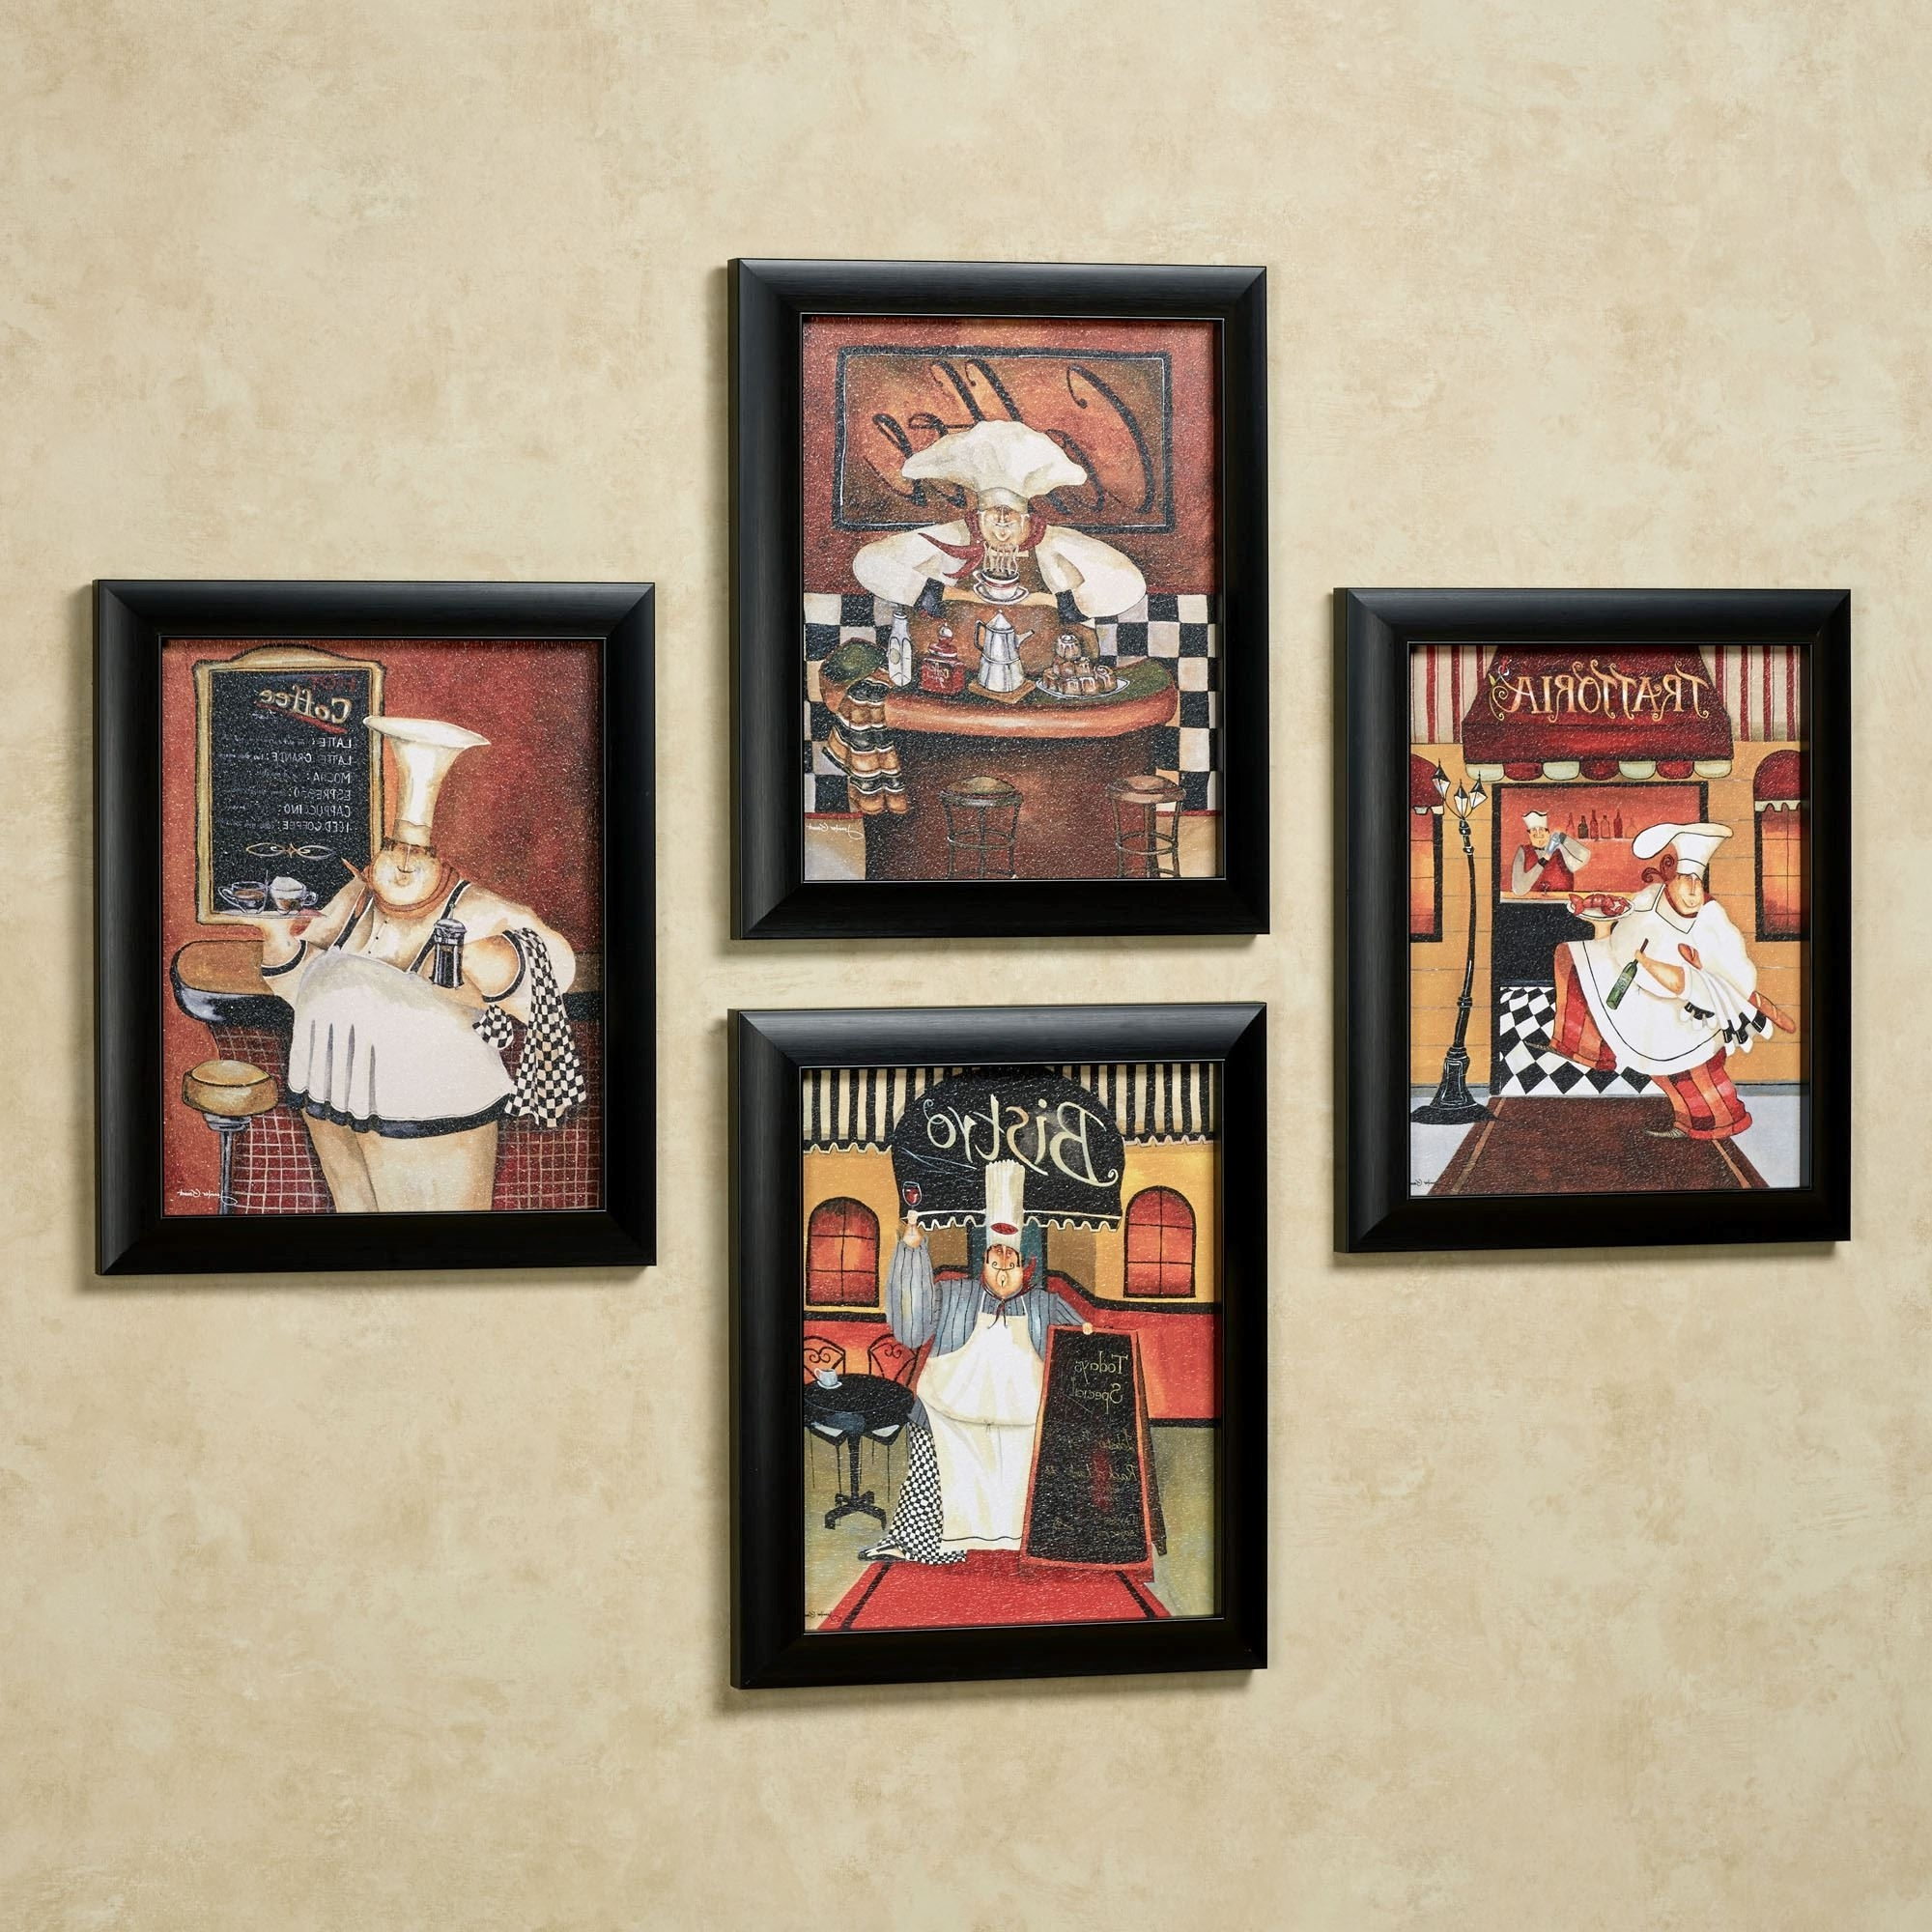 Sonoma Chef Framed Wall Art Set Intended For 2017 Wall Art Sets (Gallery 8 of 15)